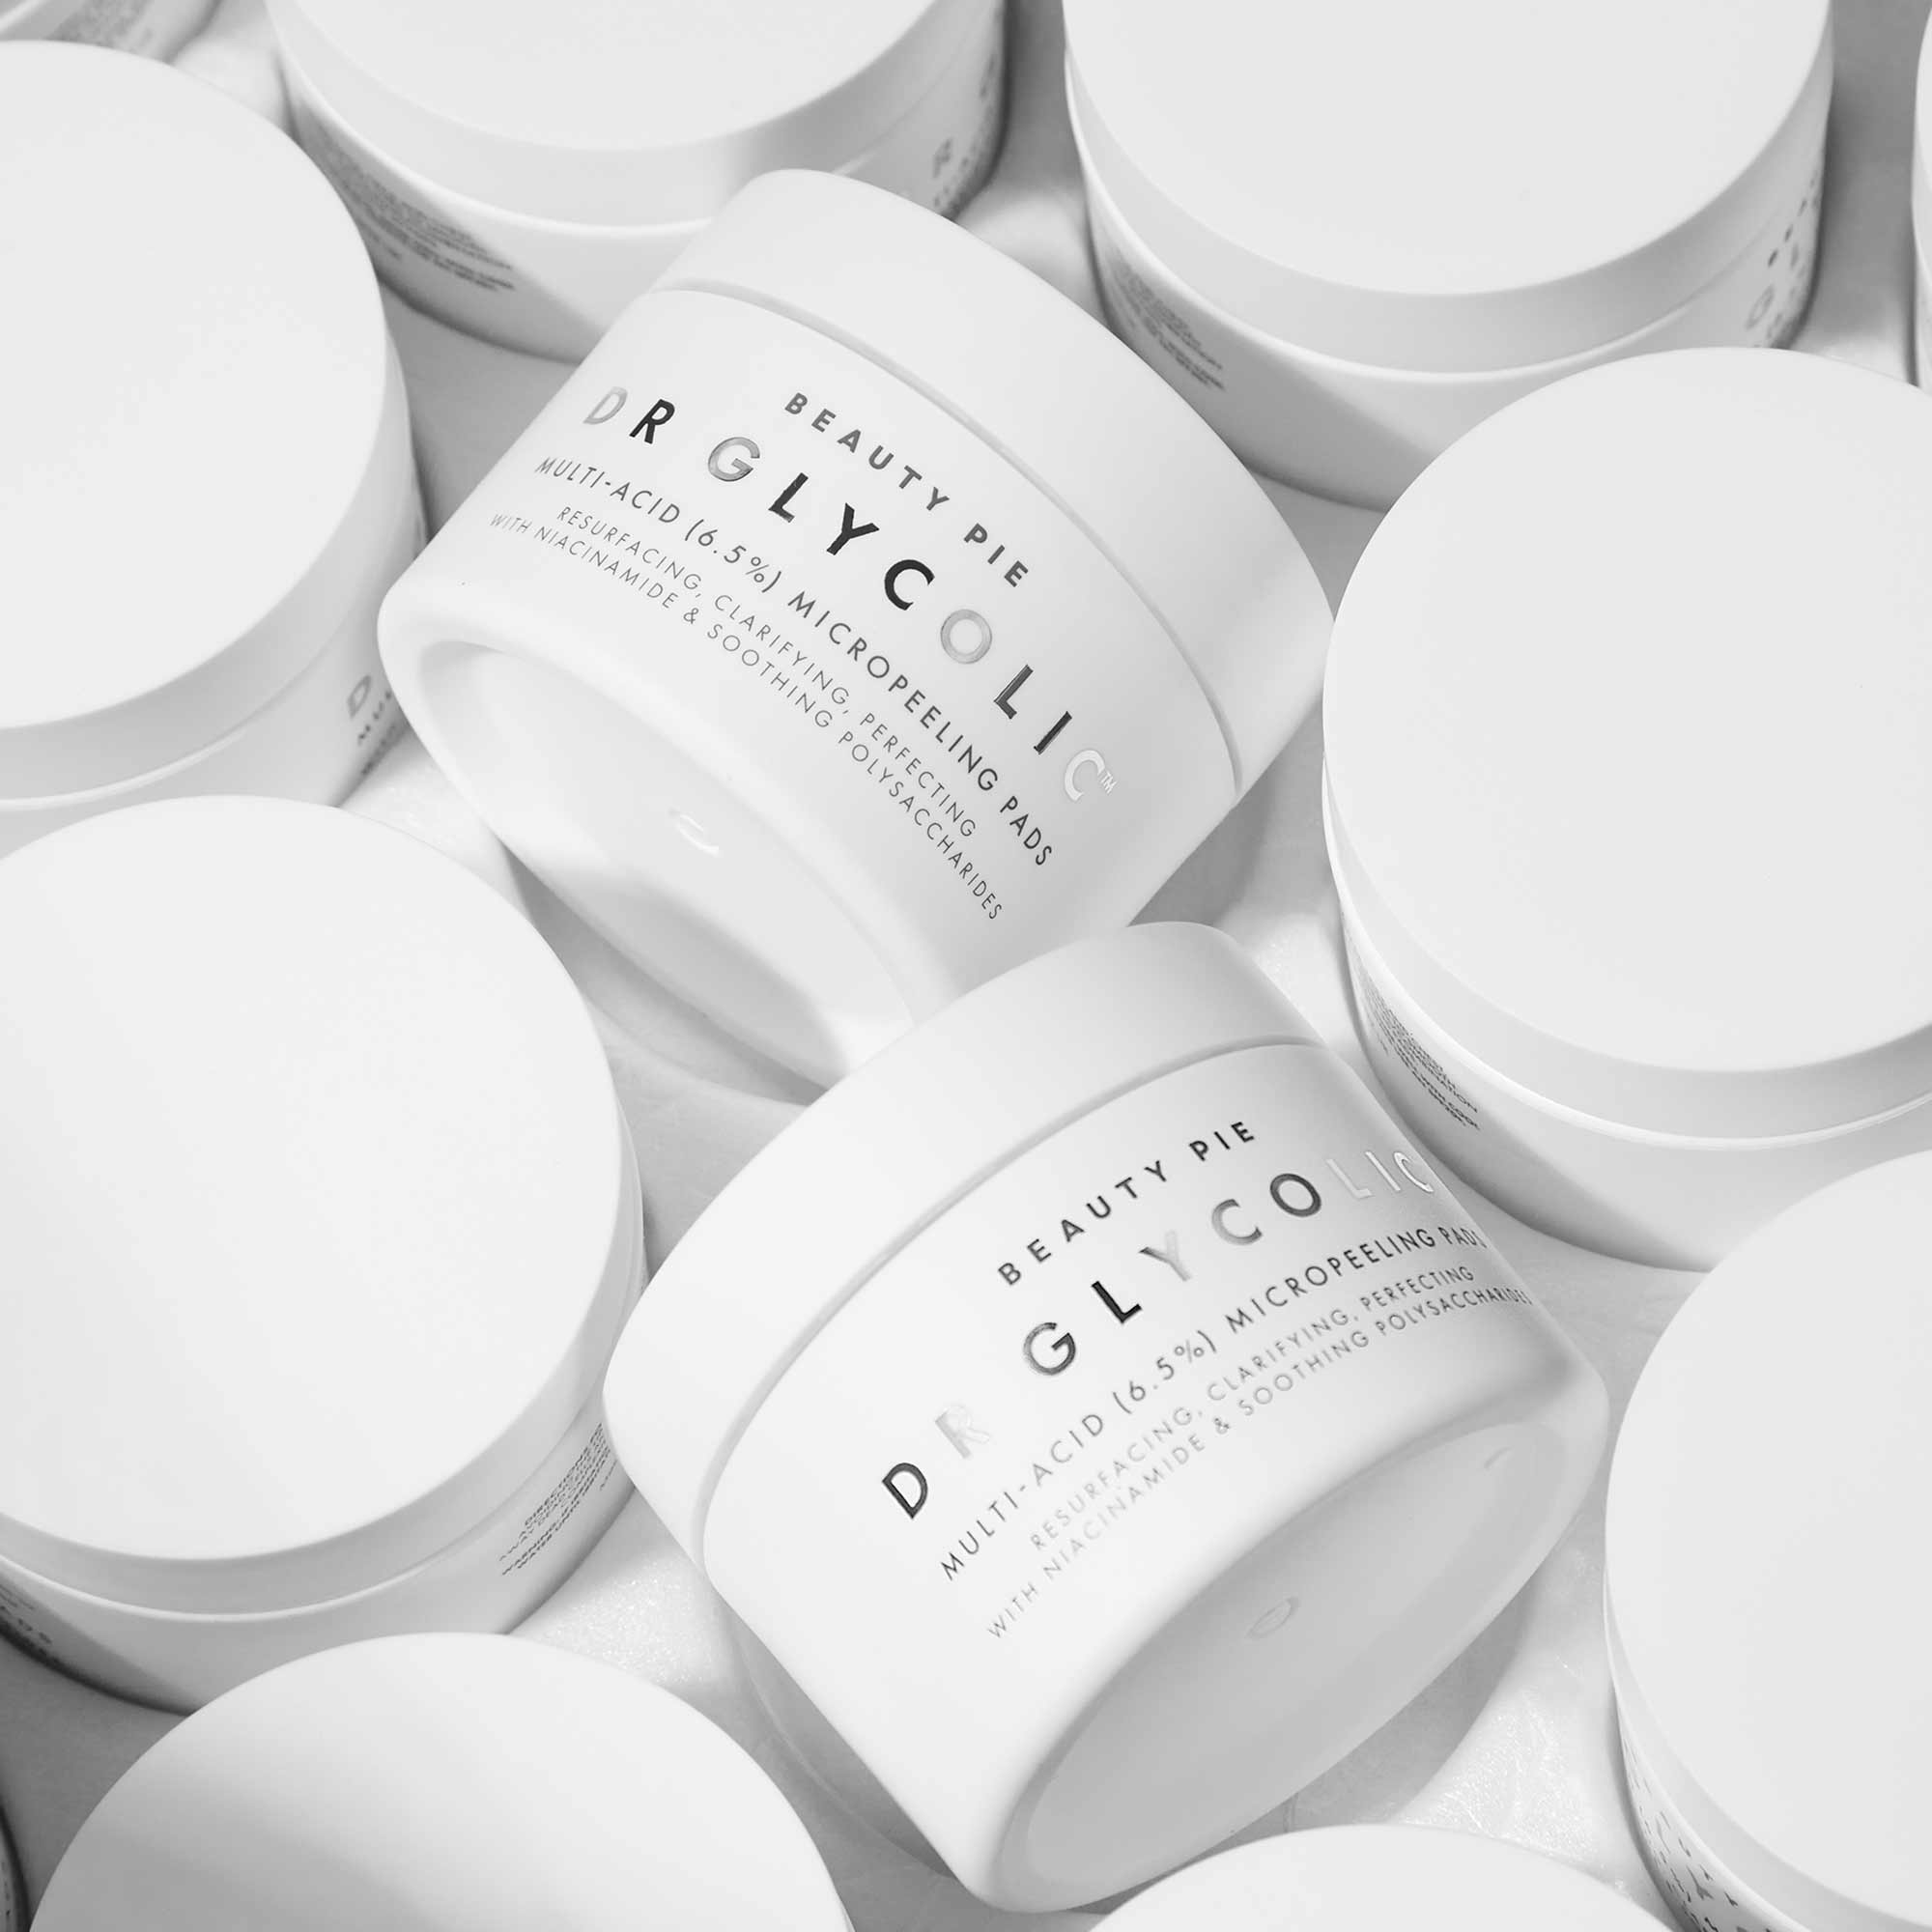 Dr Glycolic Multi-Acid Micropeeling Pads by Beauty Pie